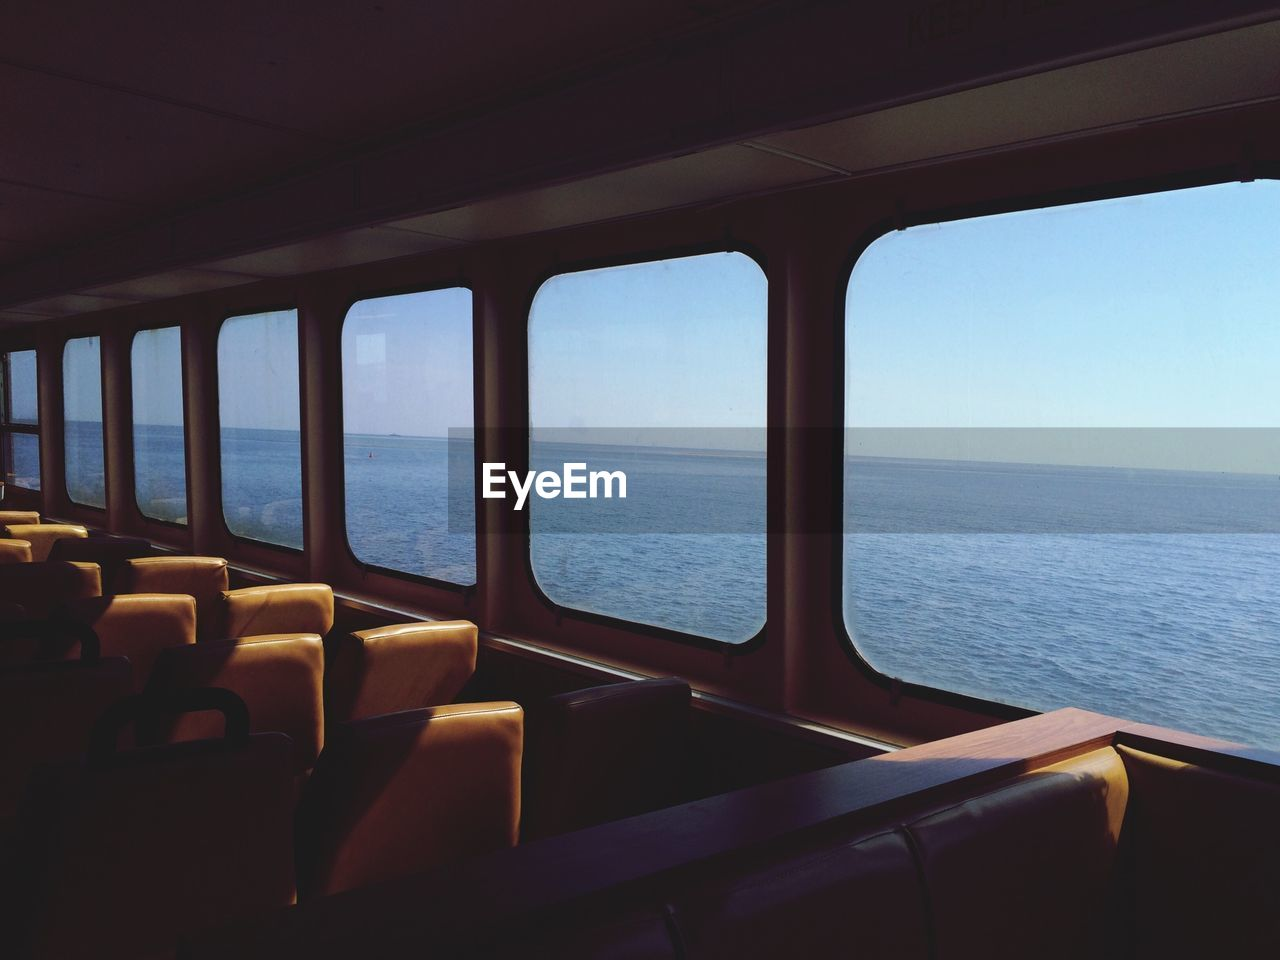 Scenic View Of Sea Seen From Ferry Windows